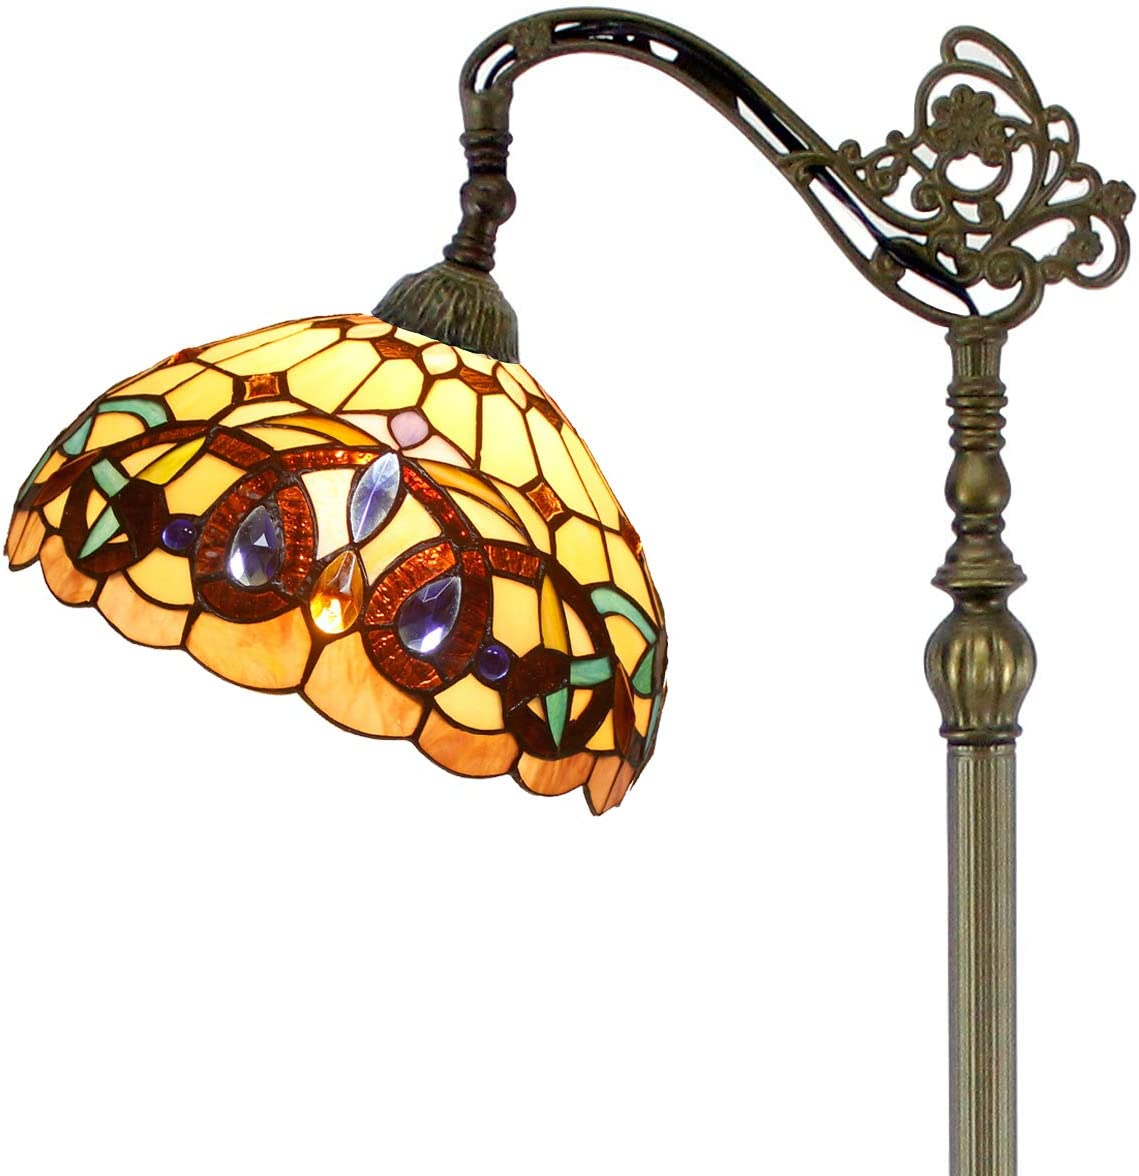 Tiffany Style Reading Floor Lamp Stained Glass Serenity Victorian Lampshade in 64 Inch Tall Antique Arched Base for Girlfriend Bedroom Living Room Lighting Table S021 WERFACTORY